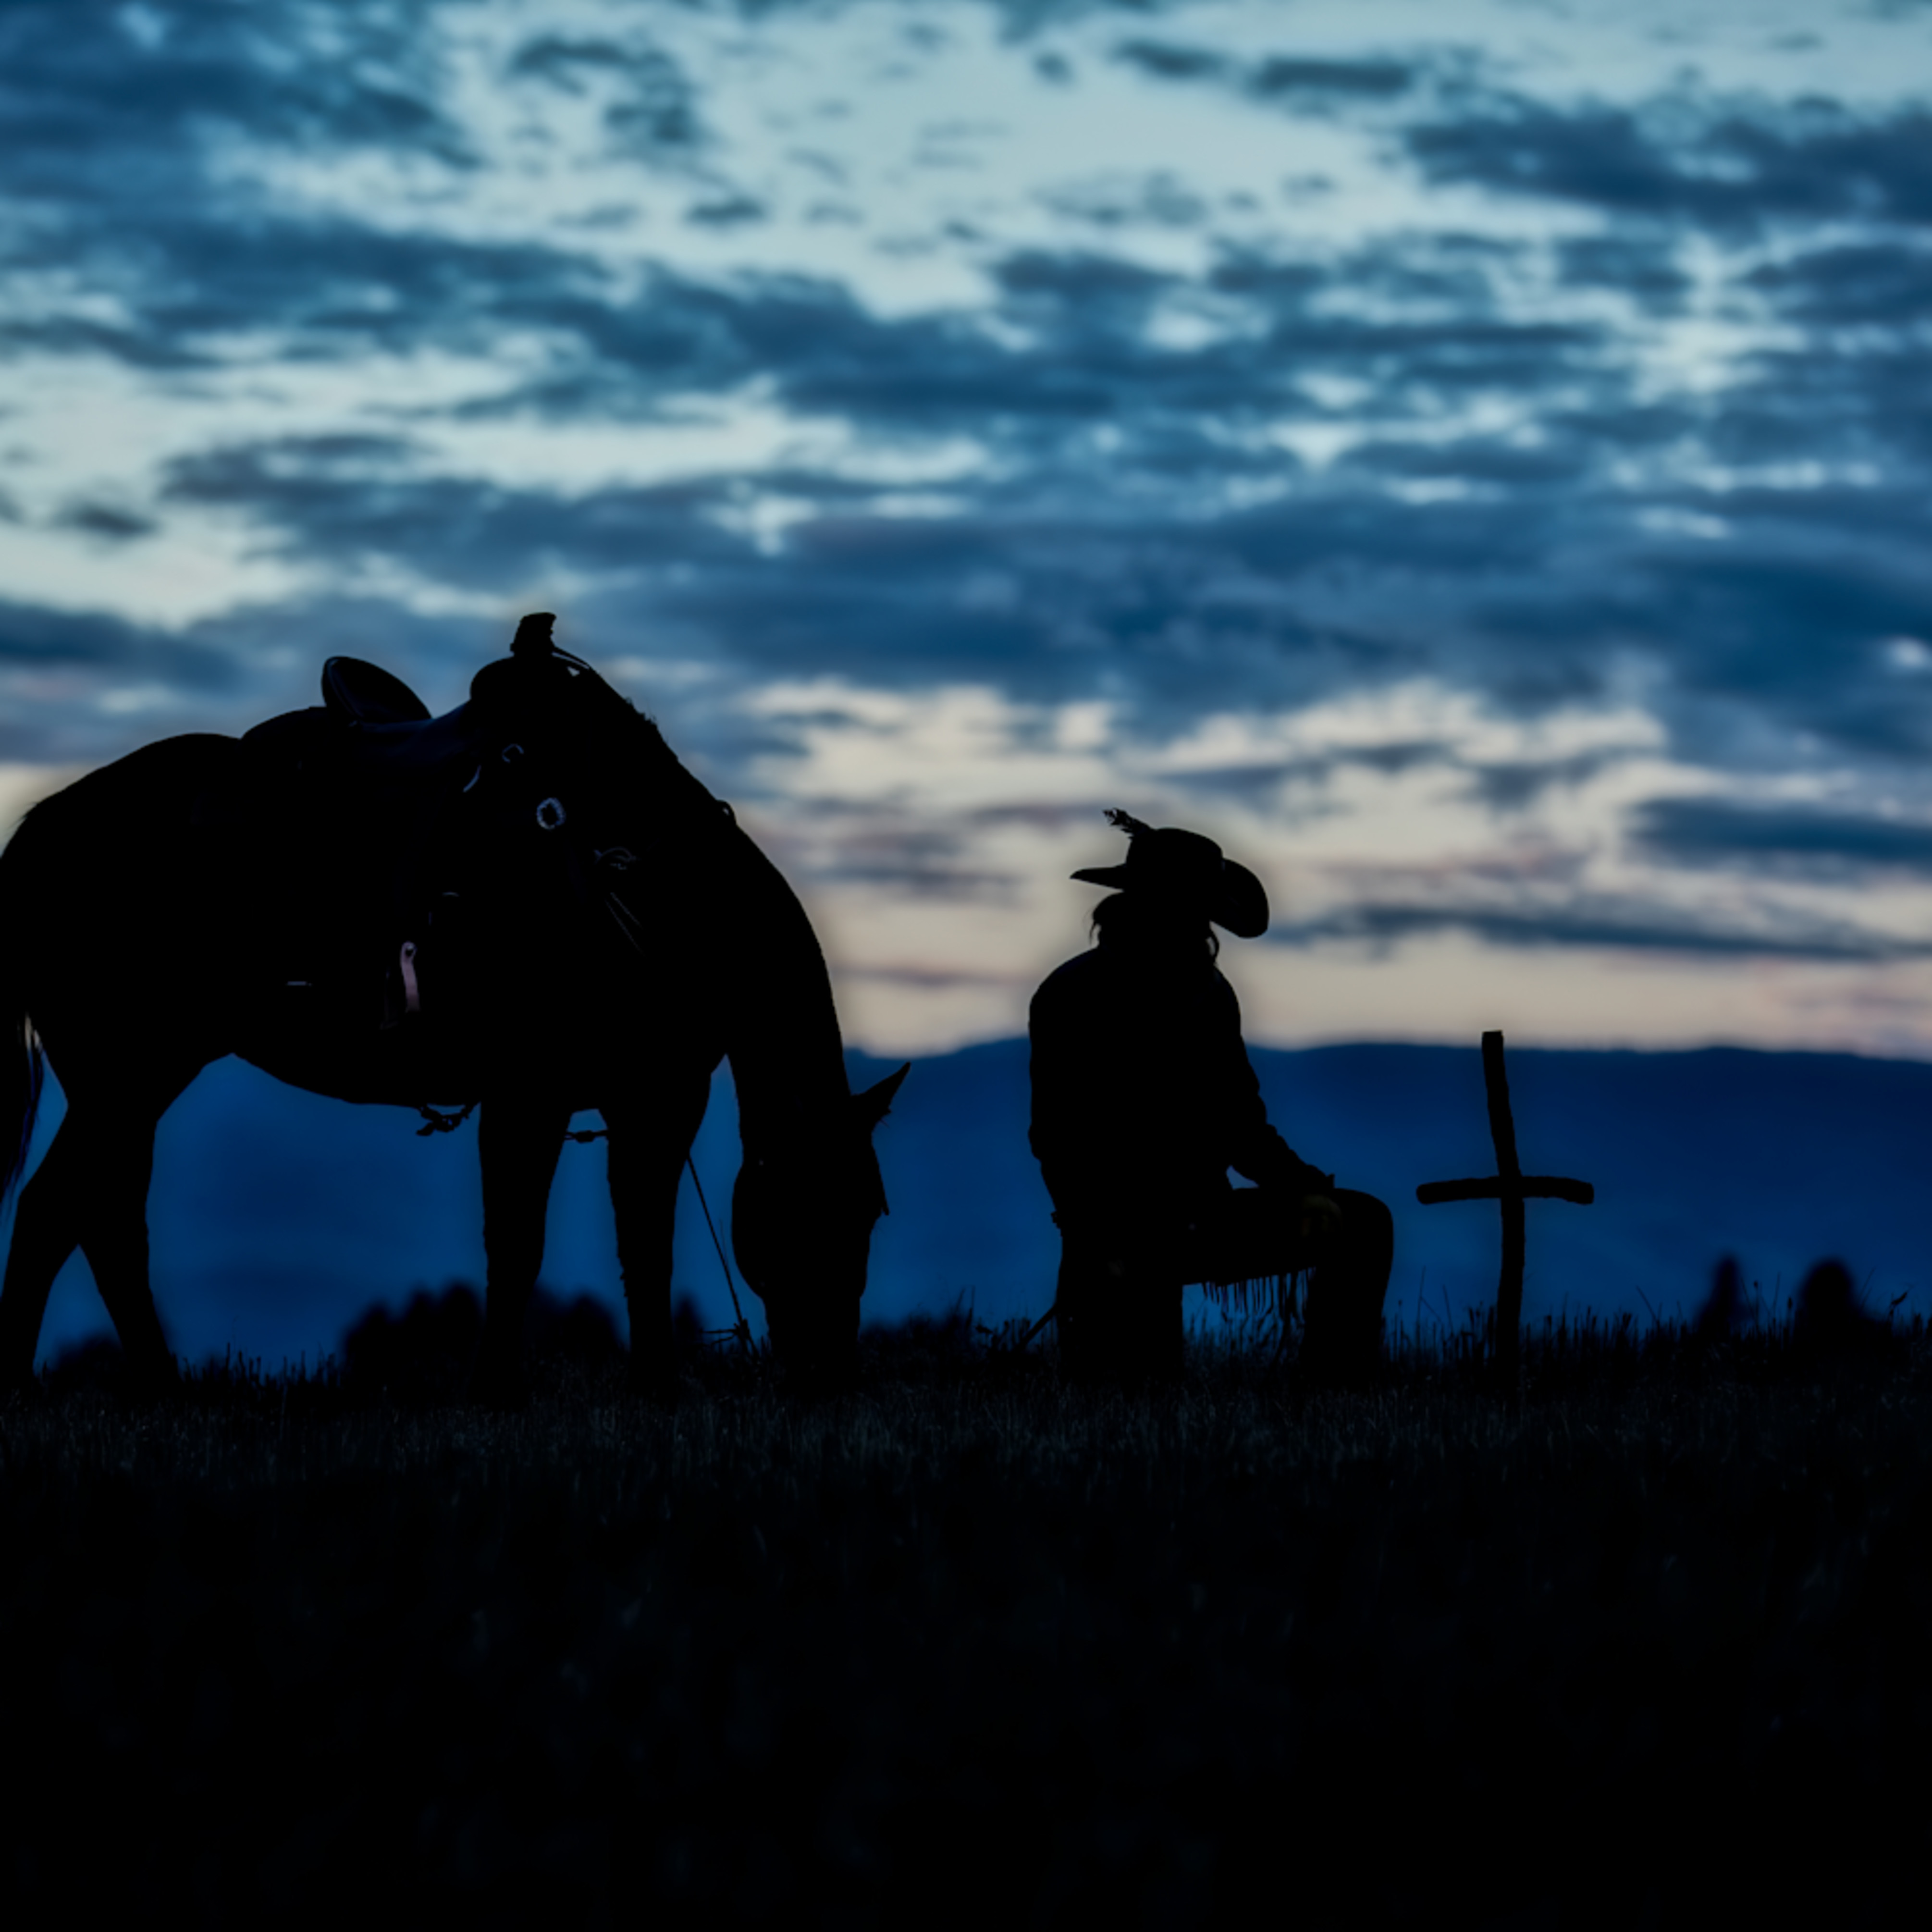 Silhouette of horse and wrangler bowing to cross djyfaj